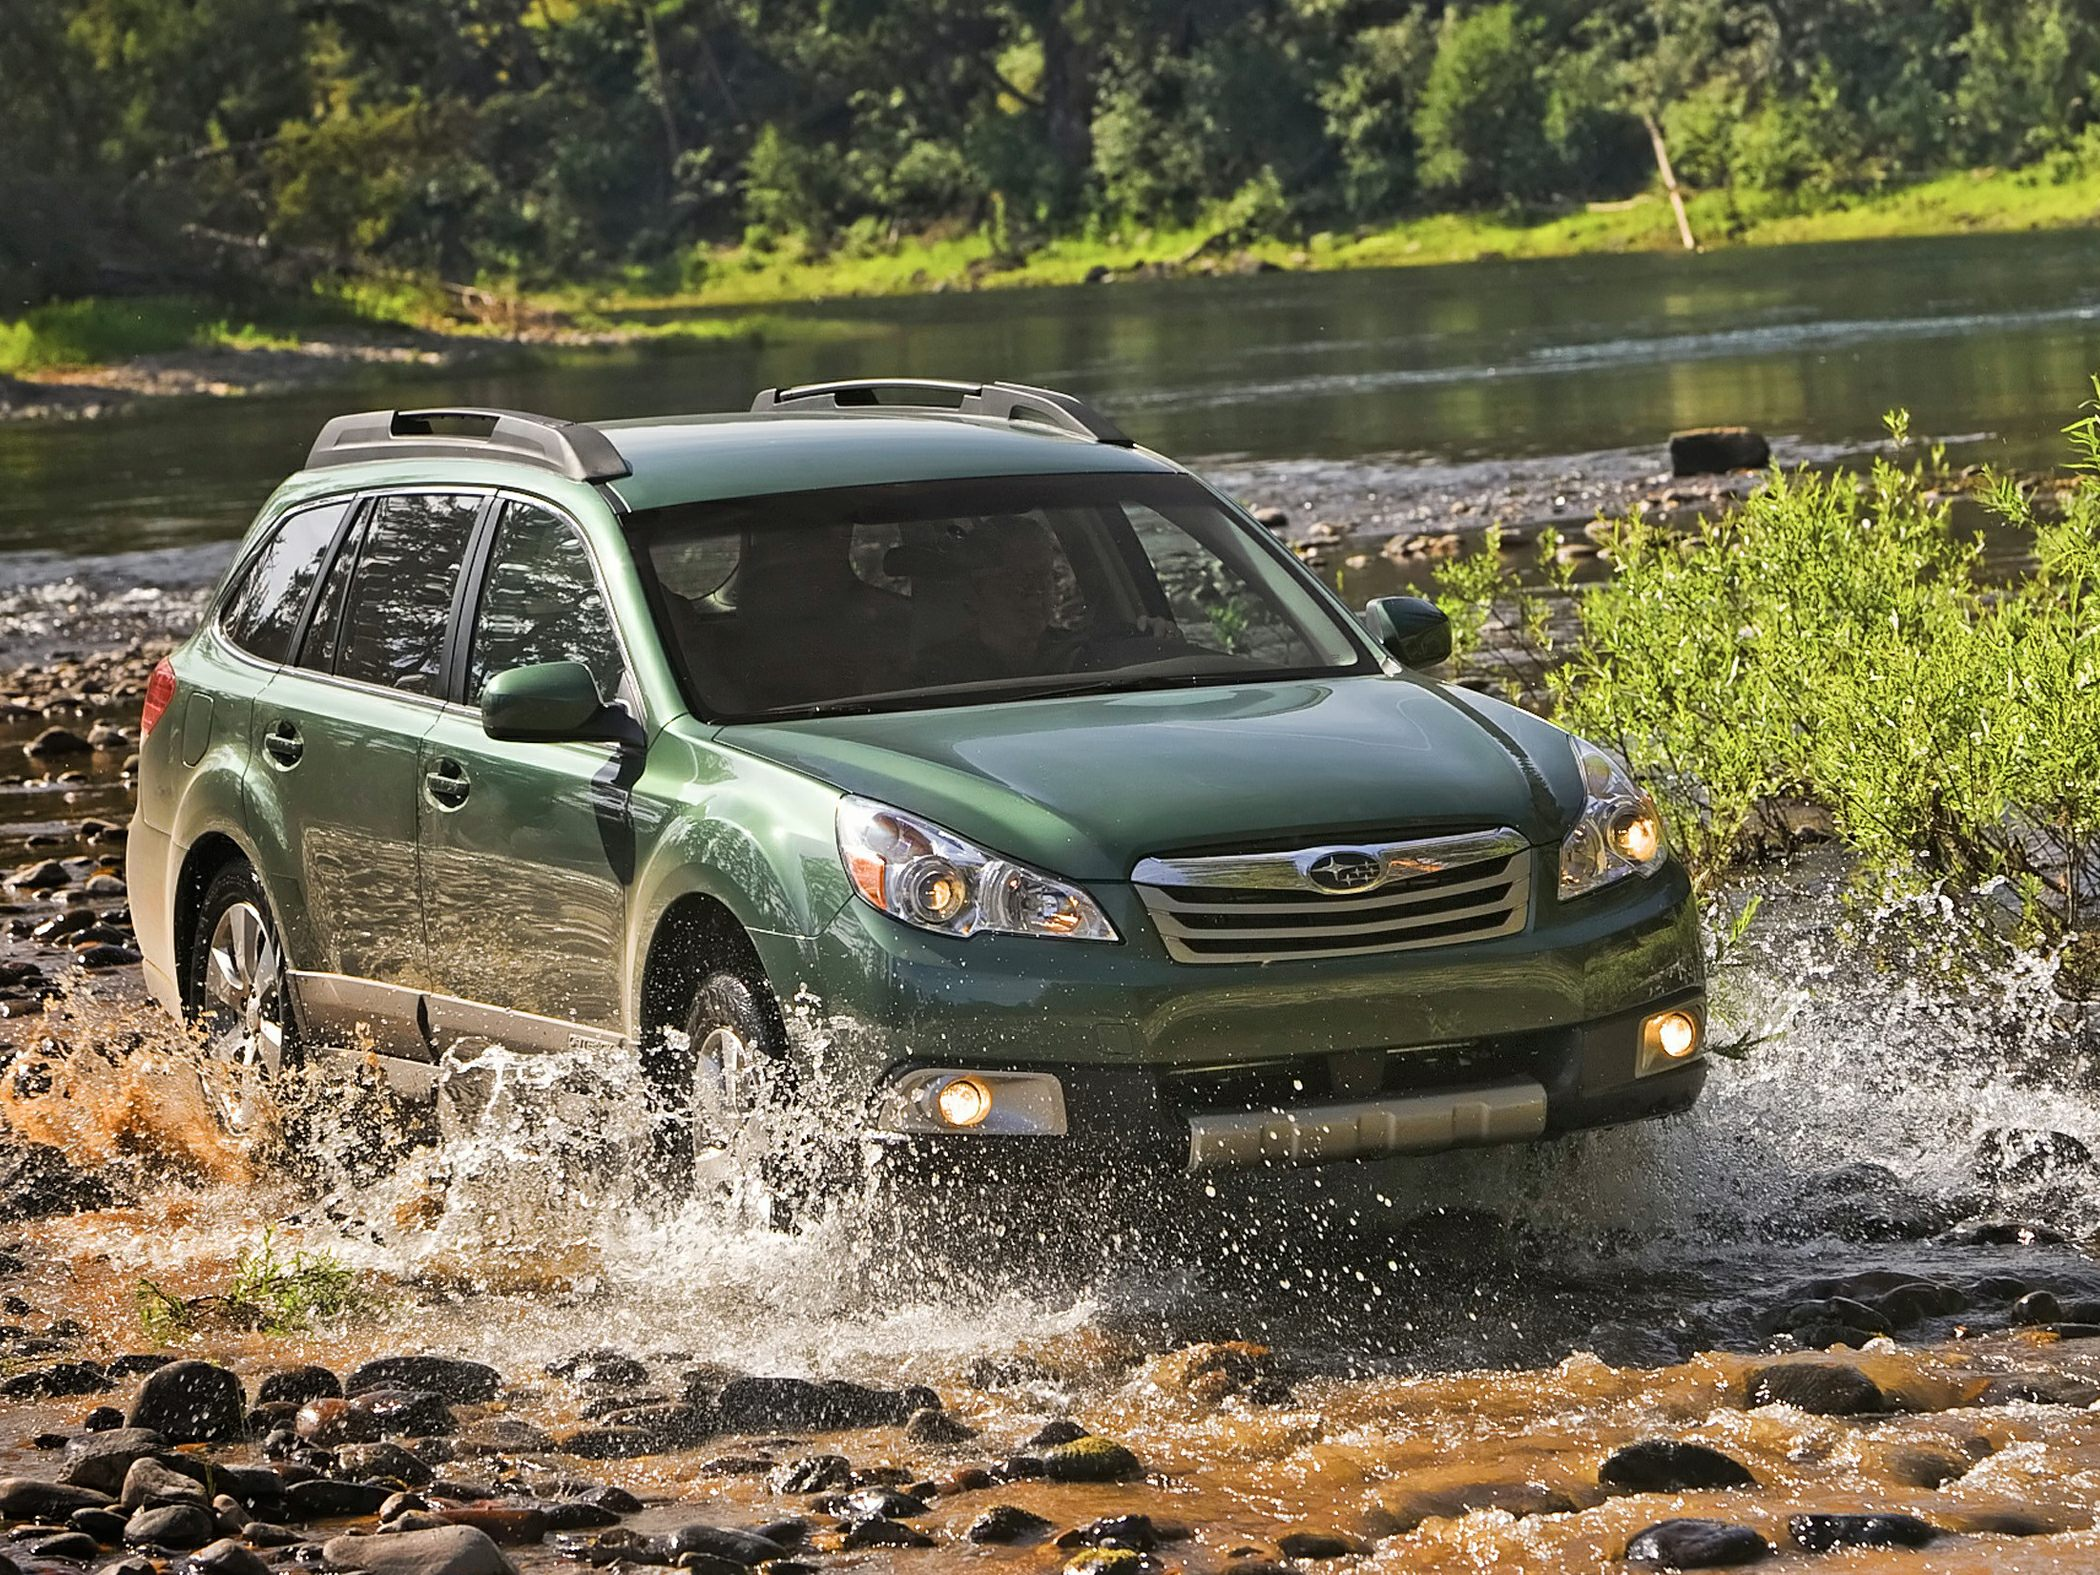 2011 Subaru Outback 3.6R 4dr All-wheel Drive Specs and PricesAutoblog